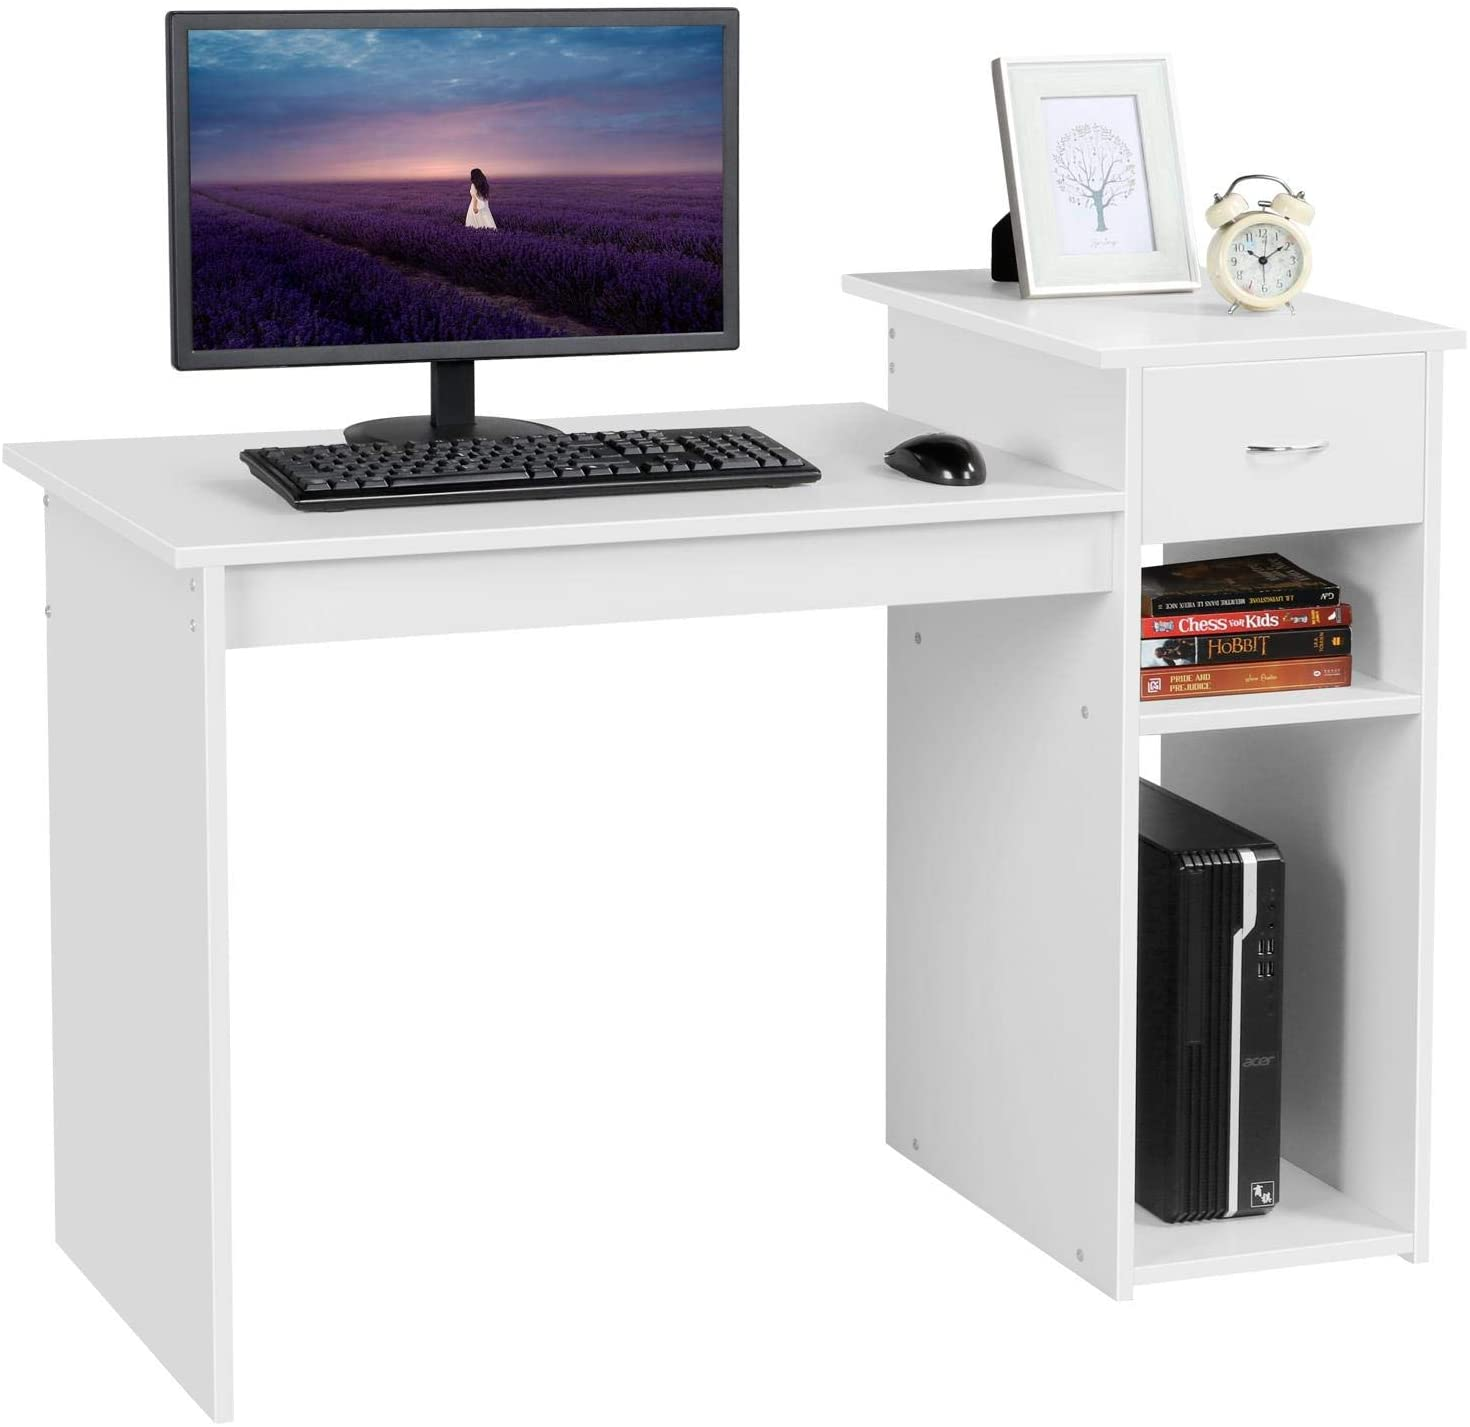 Computer Desk with Wheels /& Shelves White MDF for Office Home PC Laptop Study